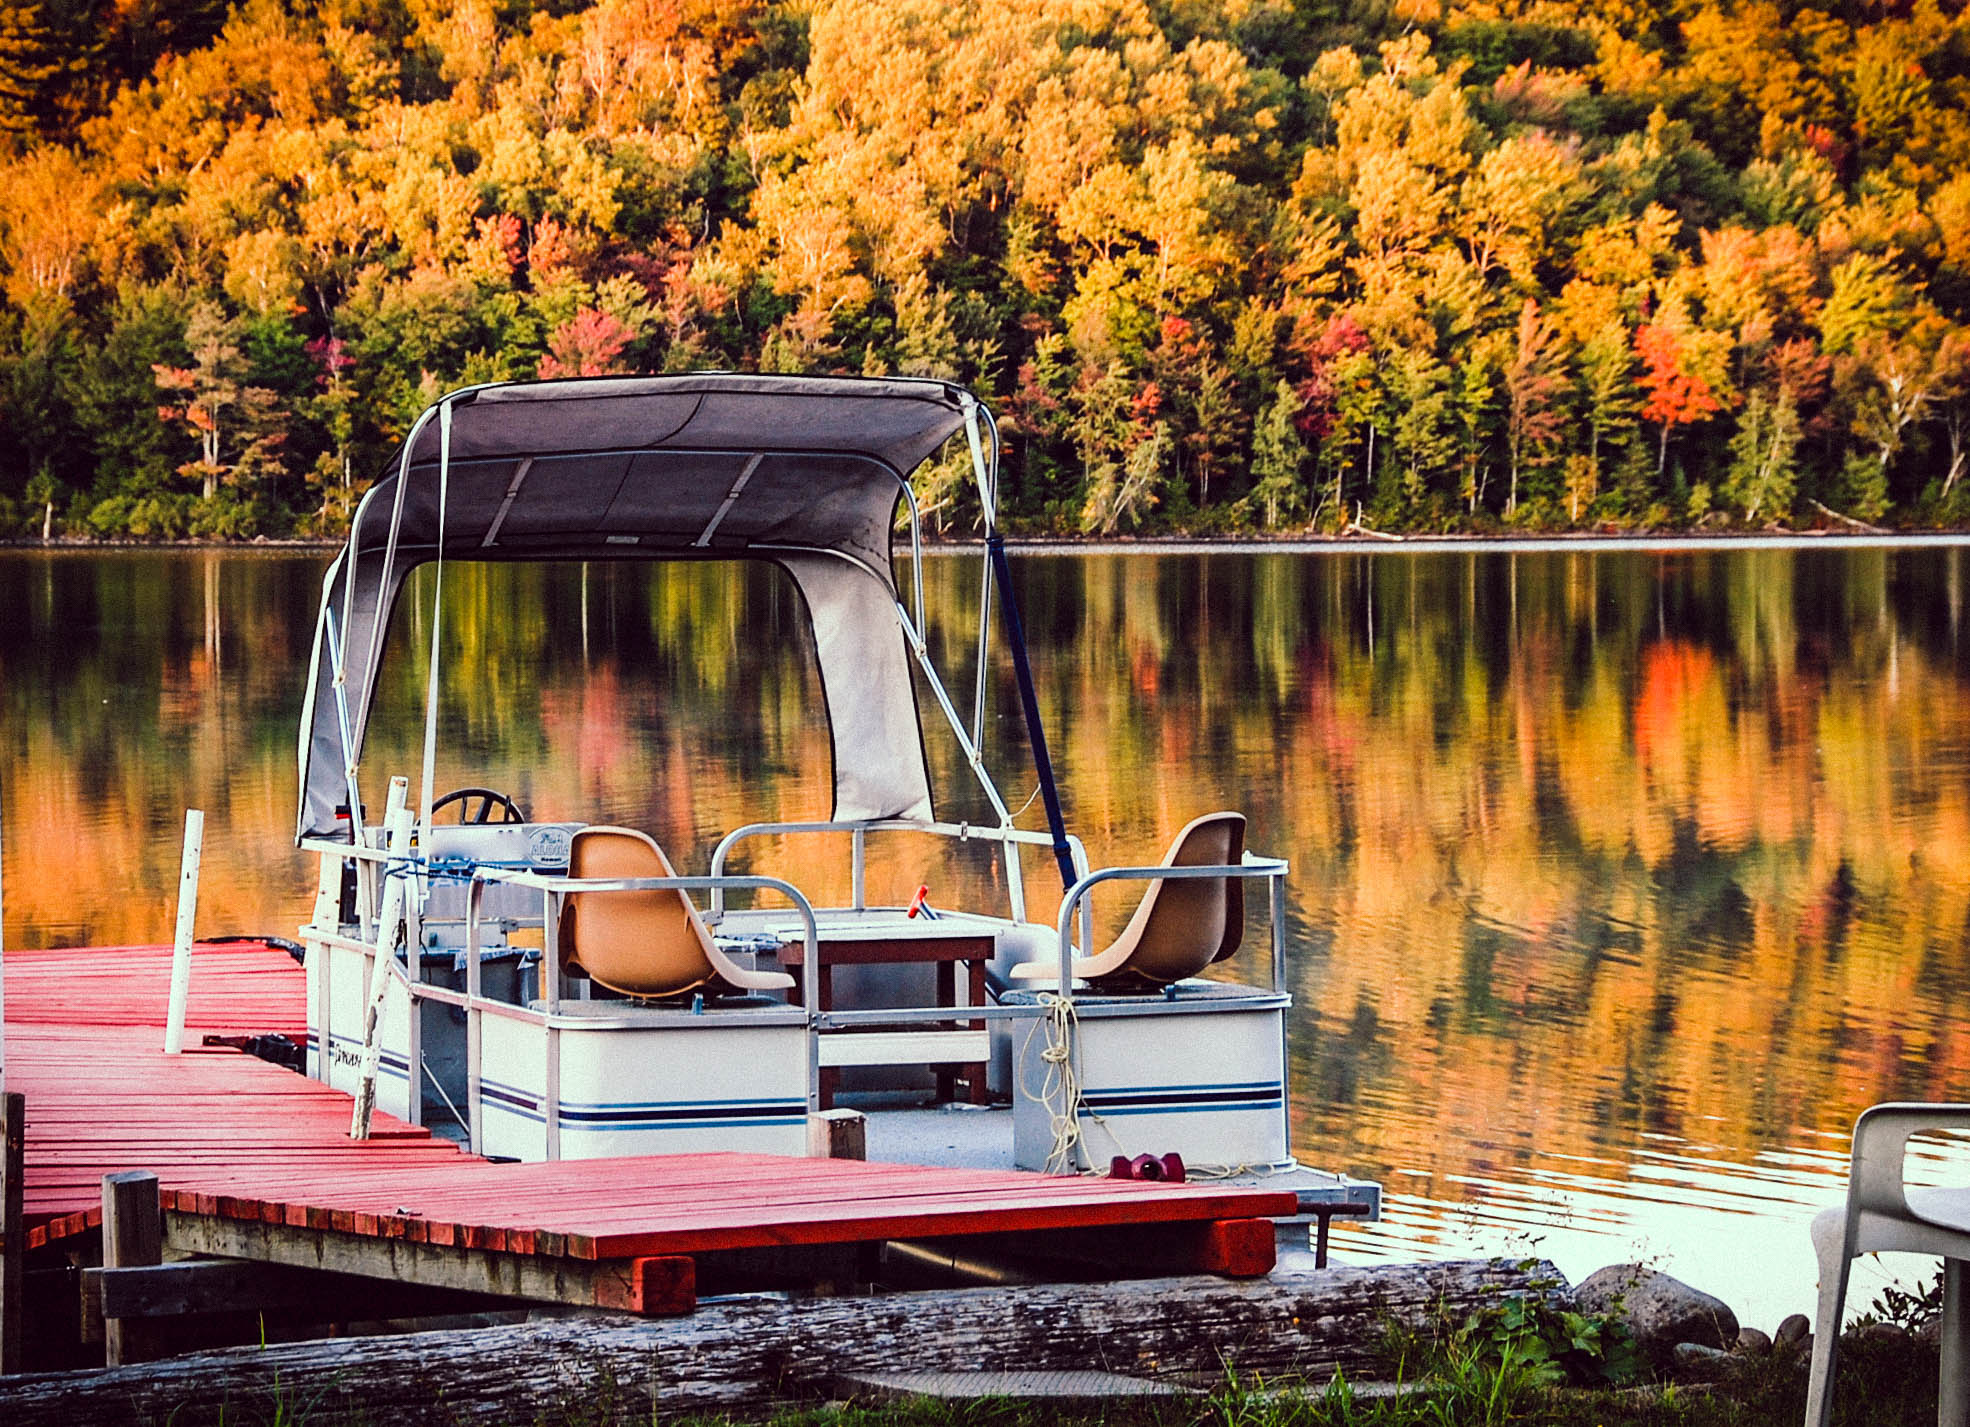 white pontoon boat on body of water with yellow trees in background